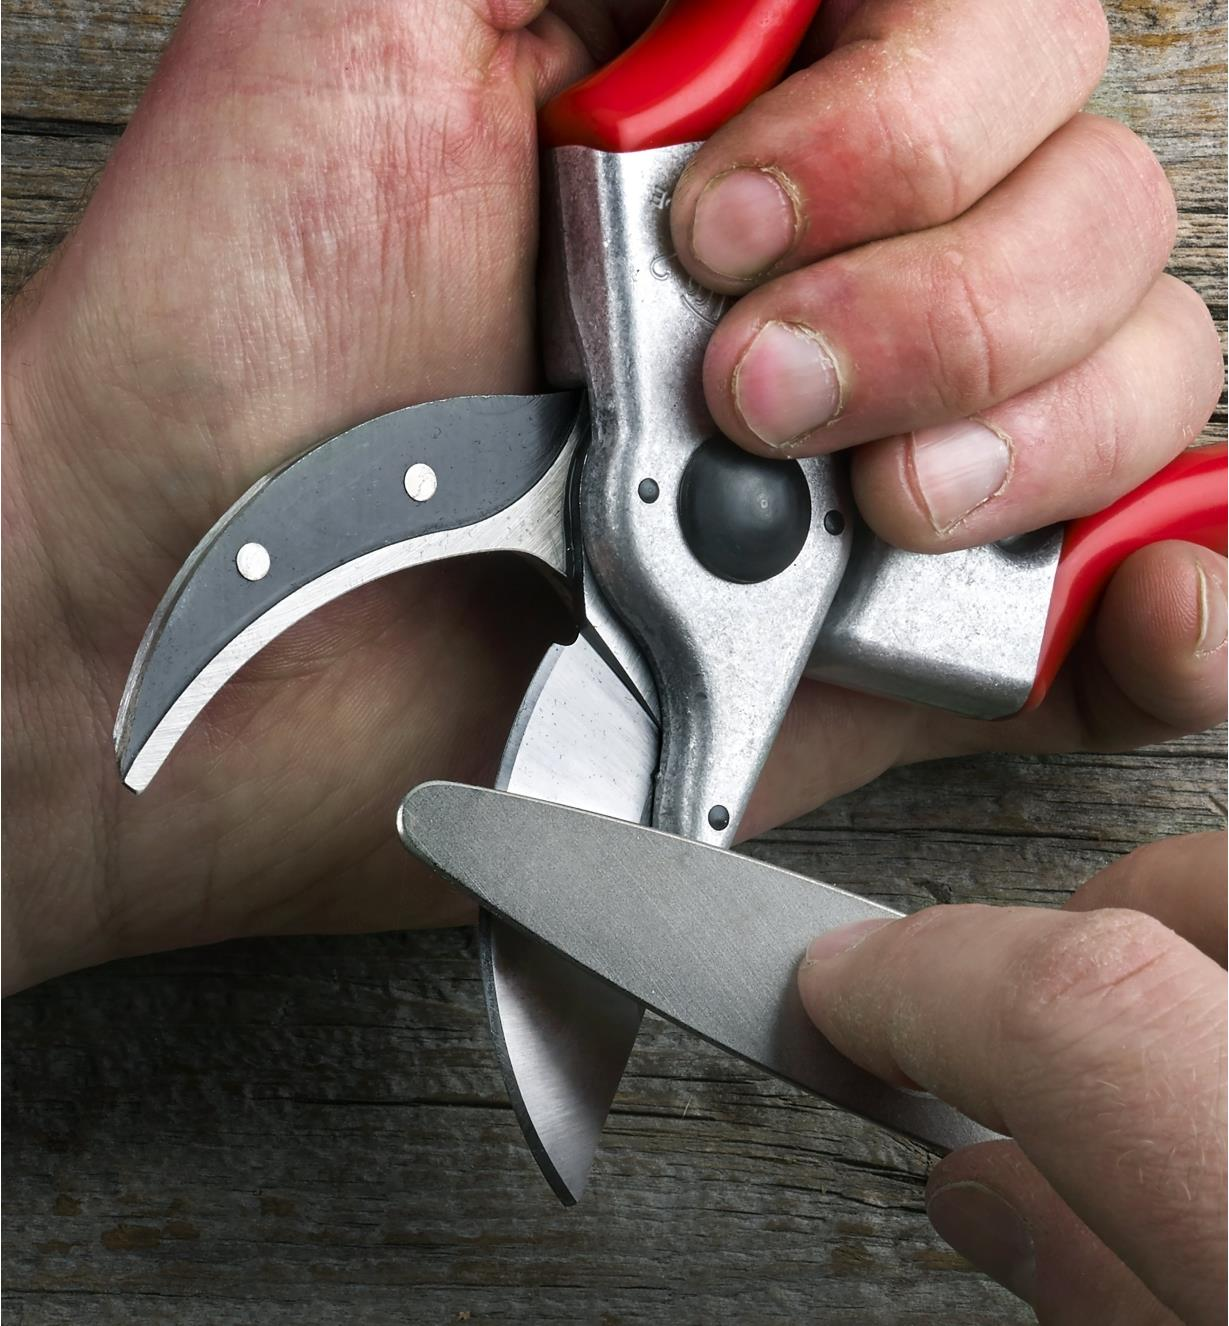 Sharpening the blade of a Felco #2 pruner using the sharpener included in the set